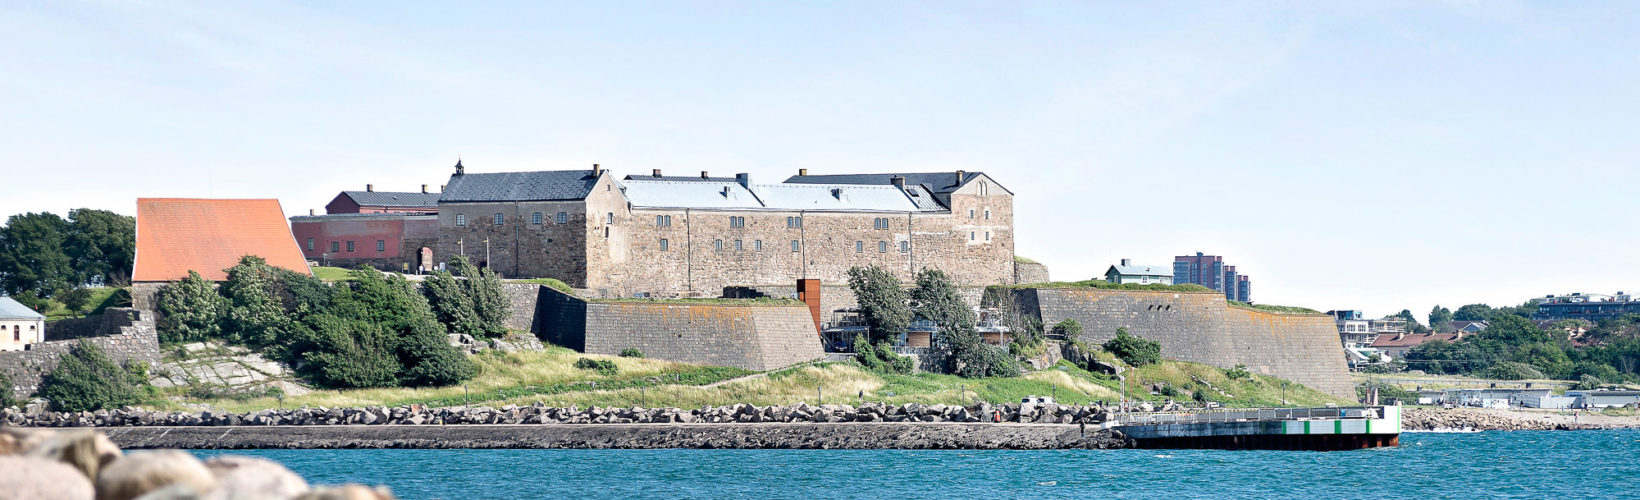 Varbergs Fortress